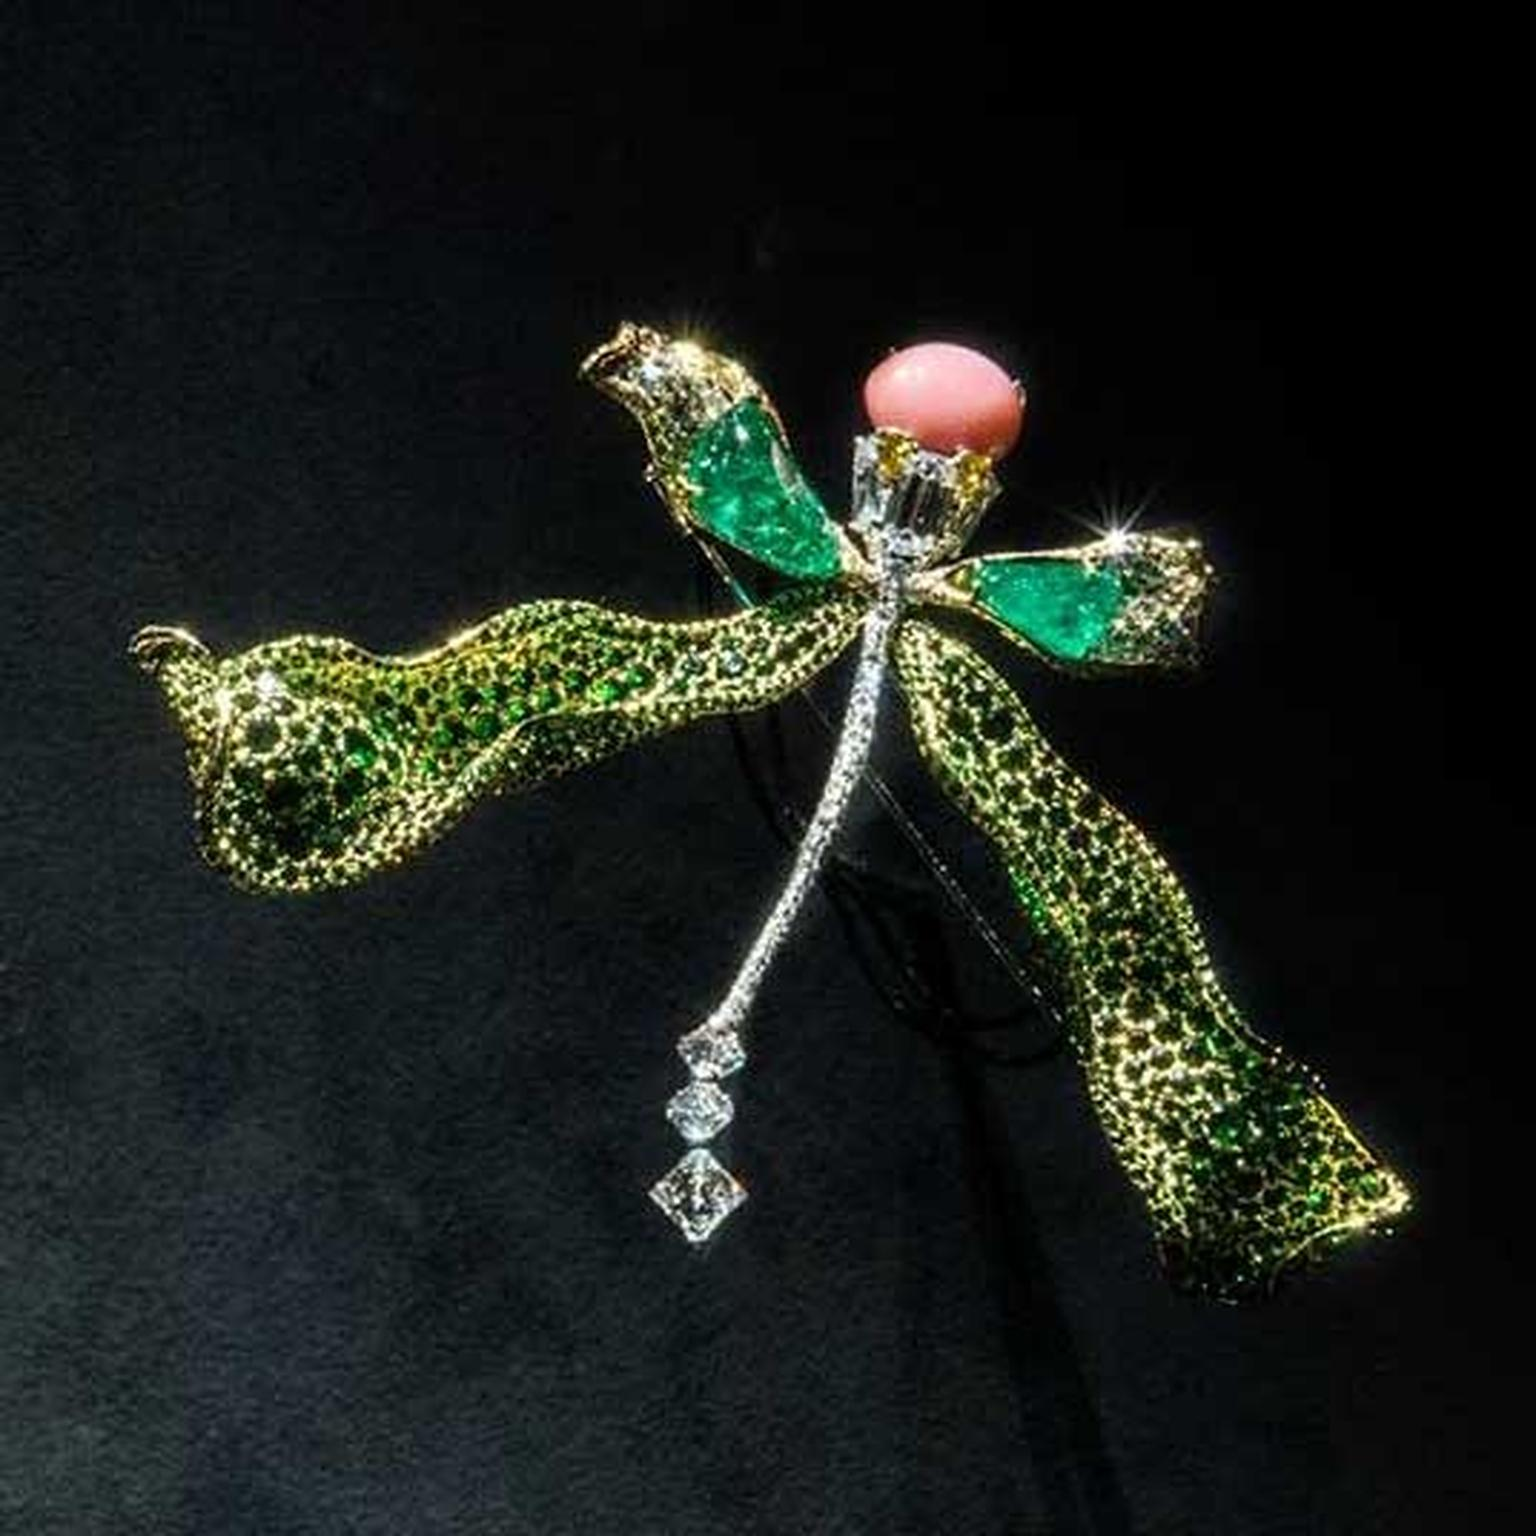 Cindy Chao Black Label Masterpiece 2018 dragonfly emerald brooch